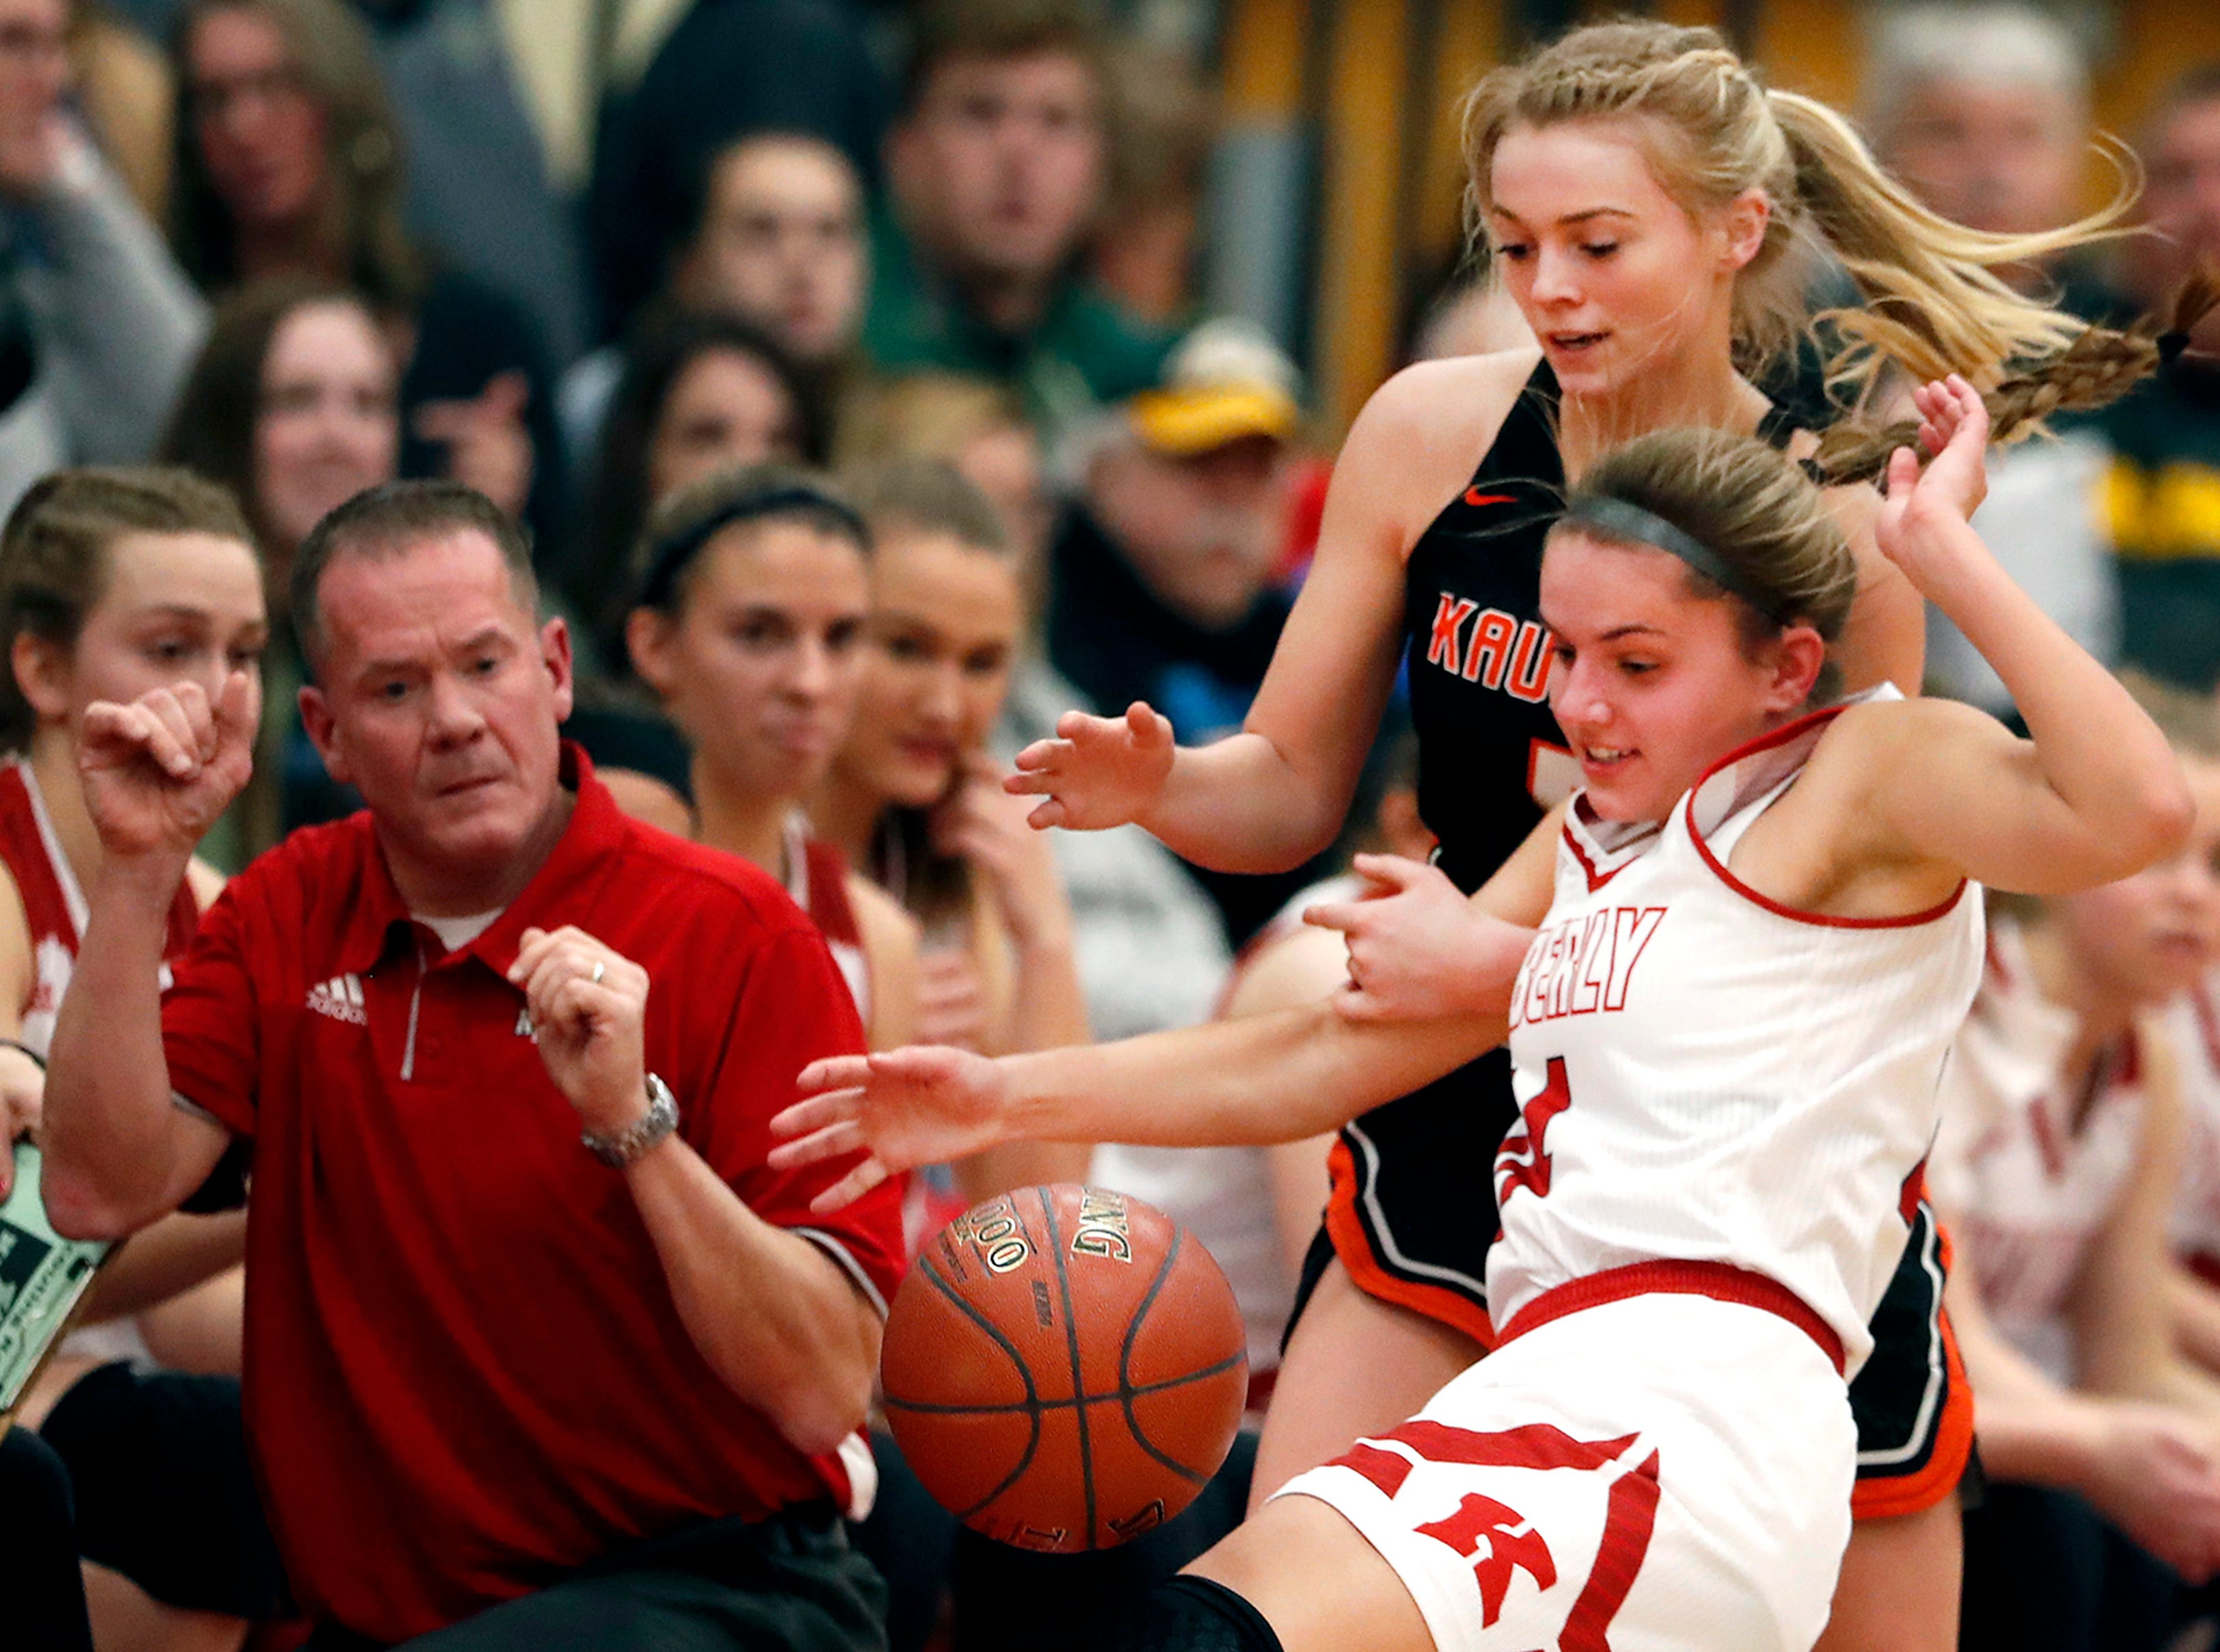 Kimberly High School's Taylor Hietpas drops the ball while being covered by Kaukauna High School's Maddy McCabe Friday, Dec. 7, 2018, in Kimberly, Wis. Kimberly High School defeated Kaukauna High School 70-55.